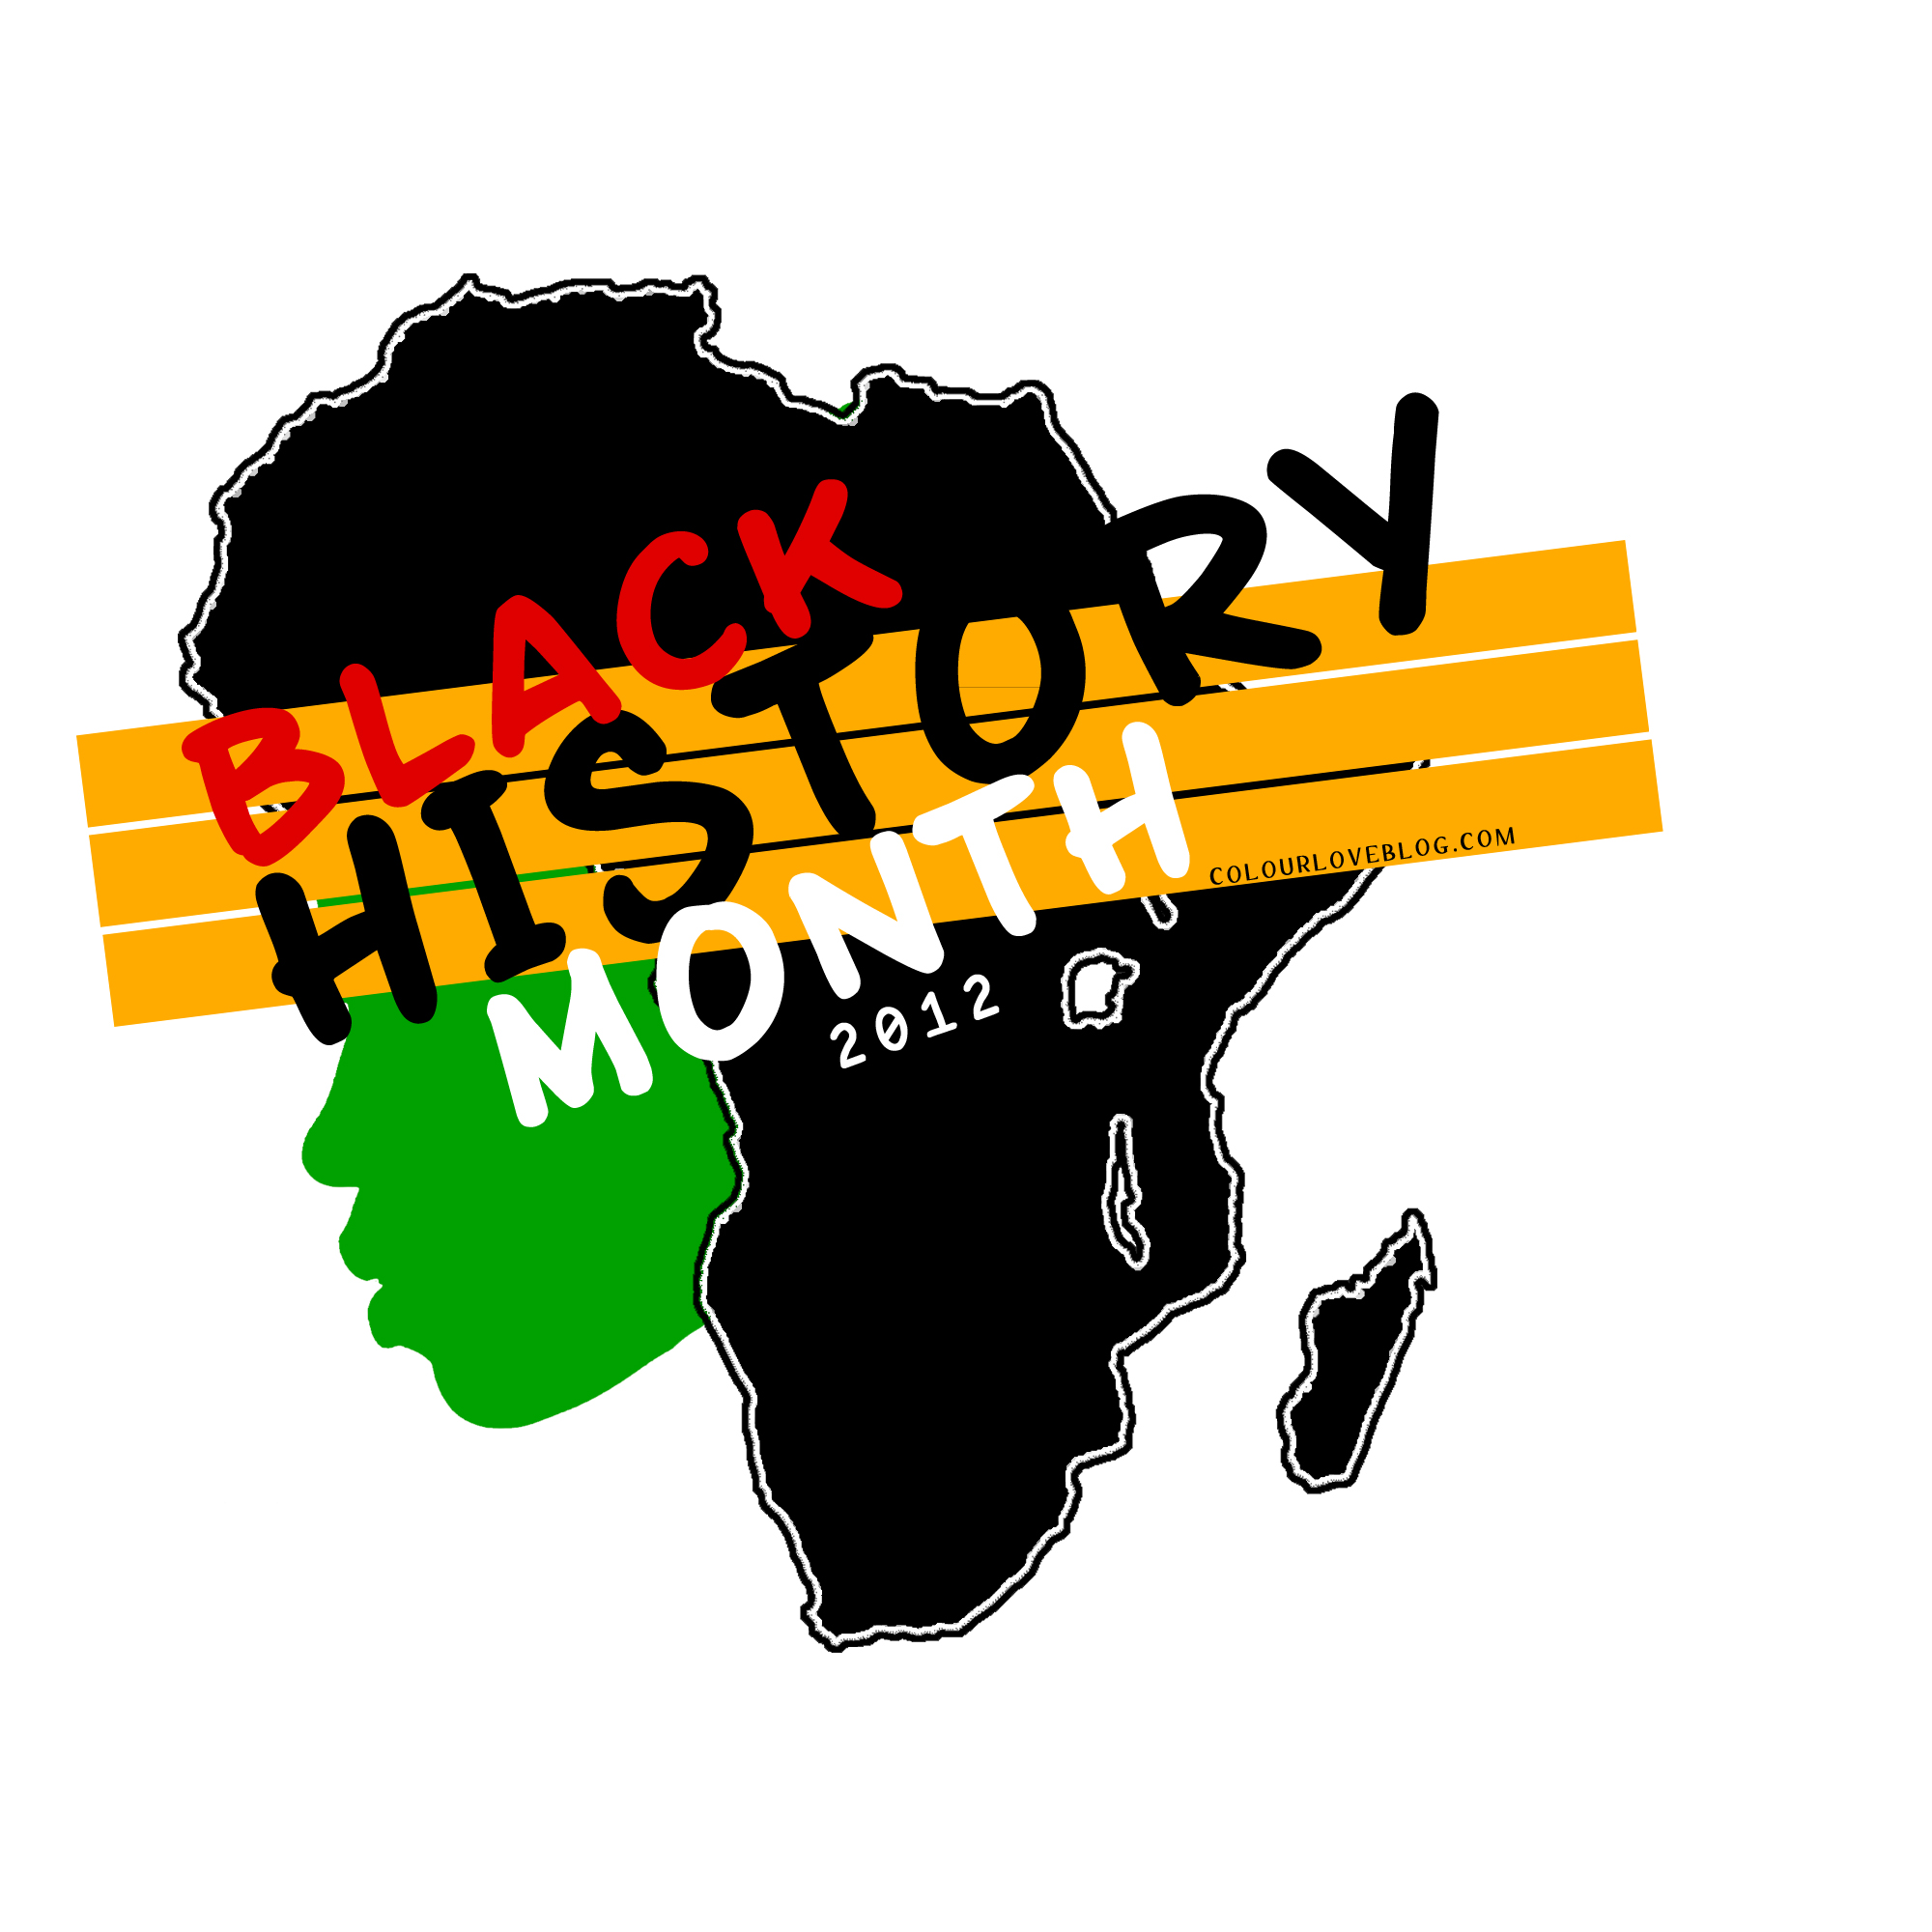 Clipart black history png library stock Black History Month Clip Art Tumundografico - Free Clipart png library stock